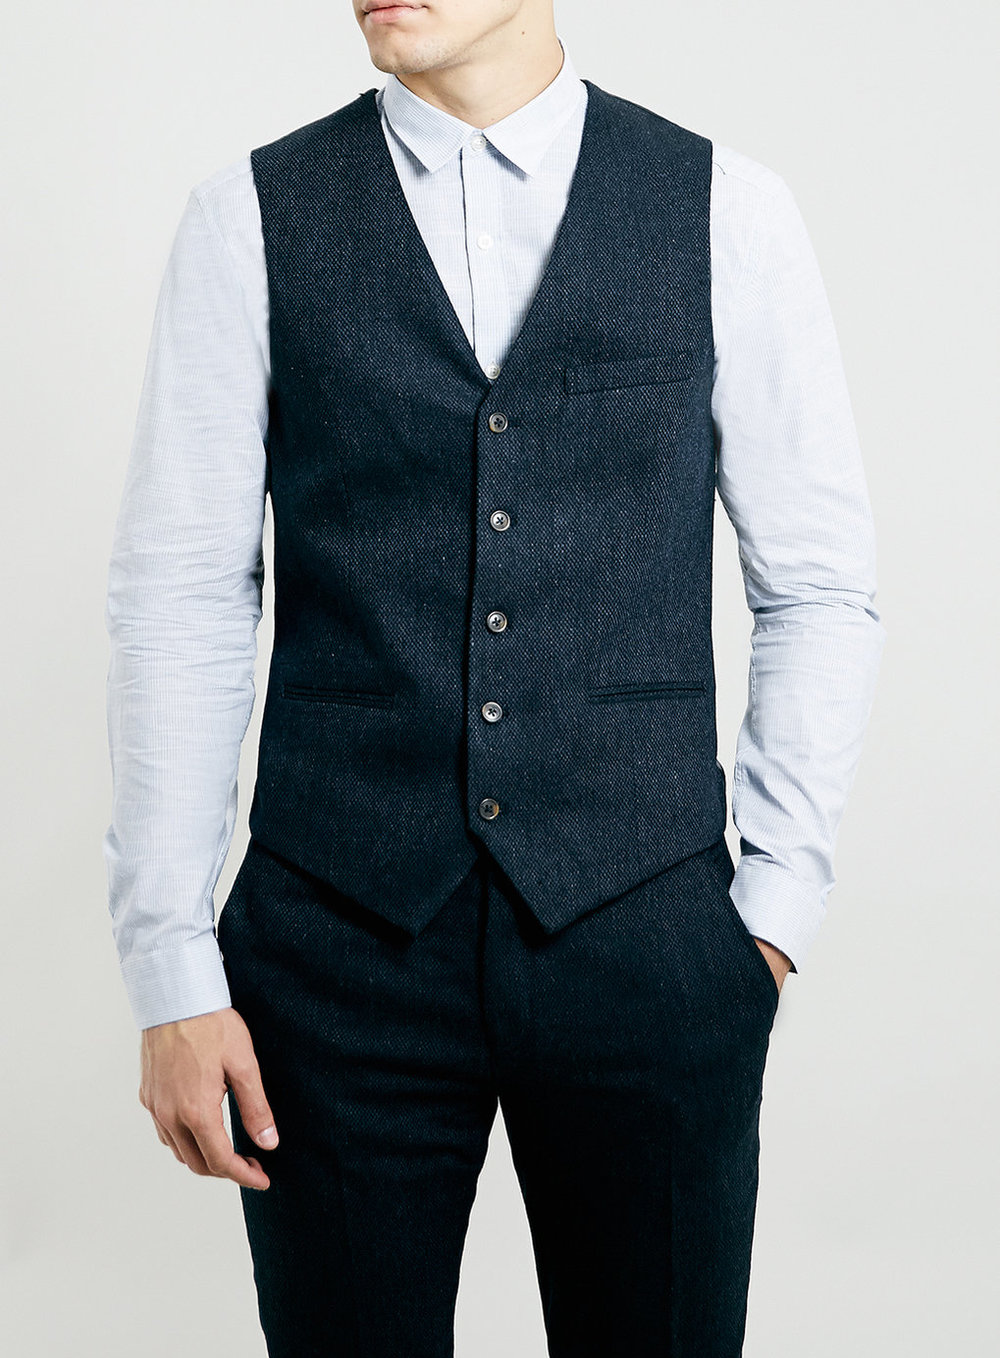 Navy Tweed Suit Vest, was $75, now $60